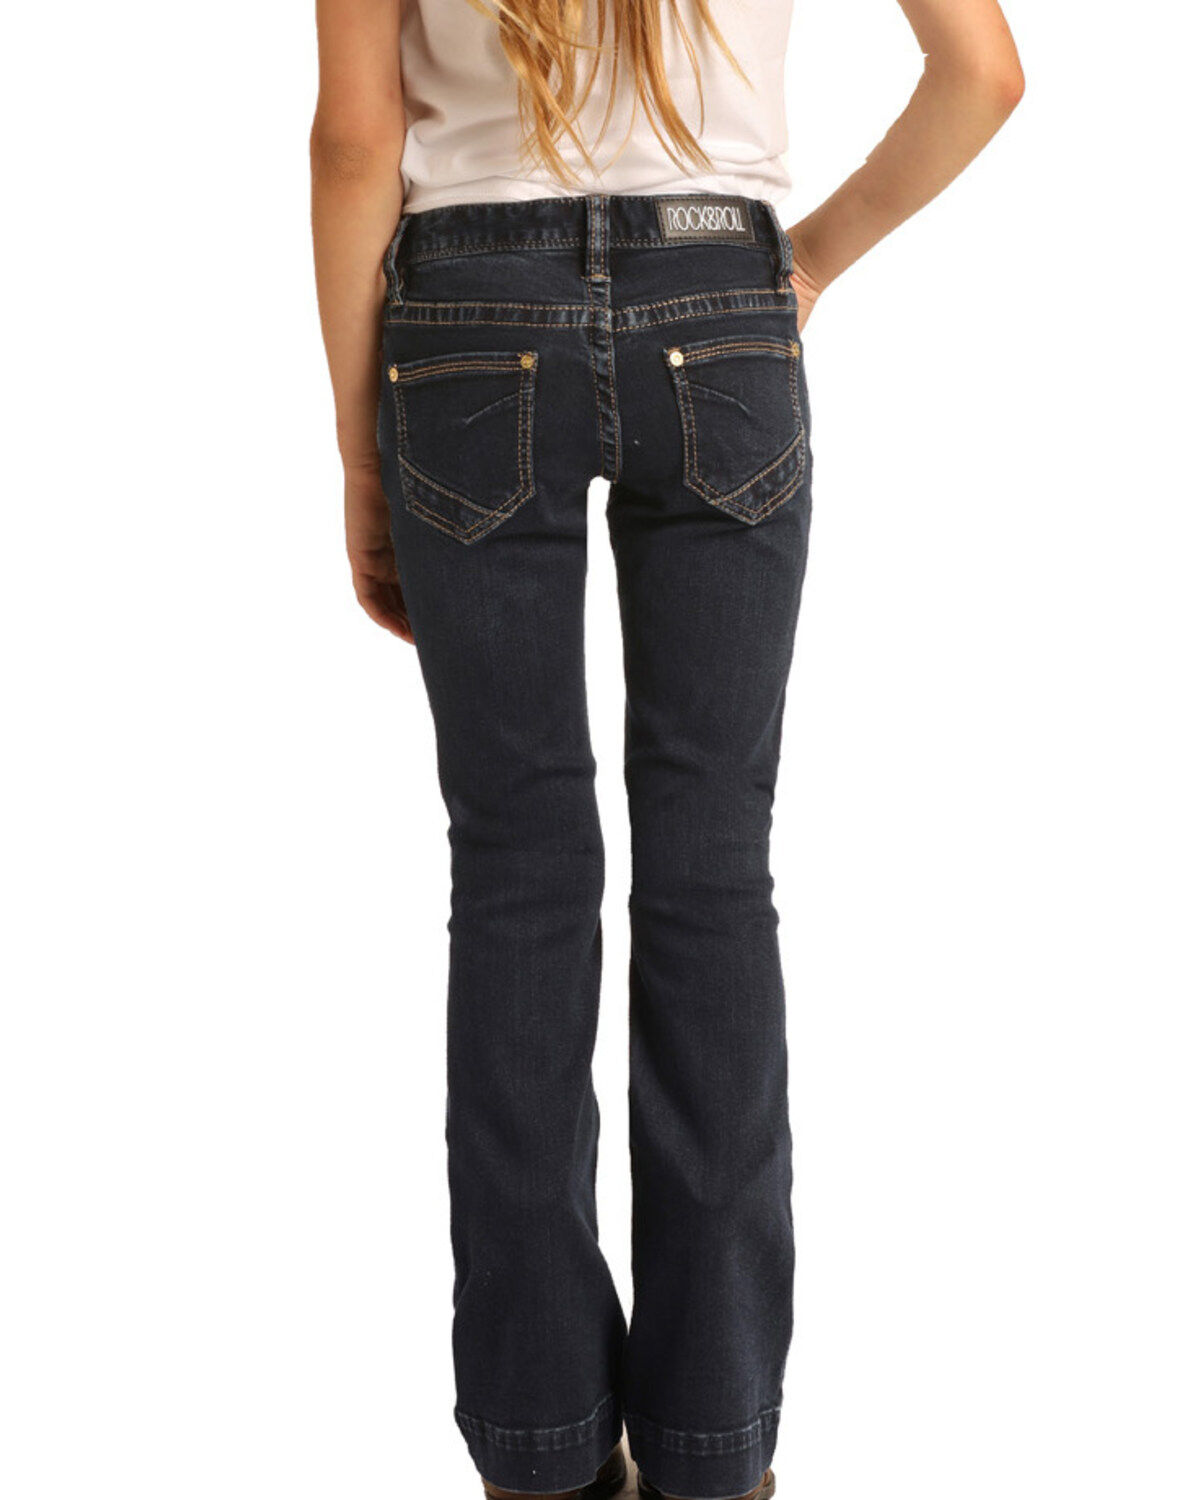 Rock and Roll Cowgirl Girls Boot Cut Jeans Pink Embroidery